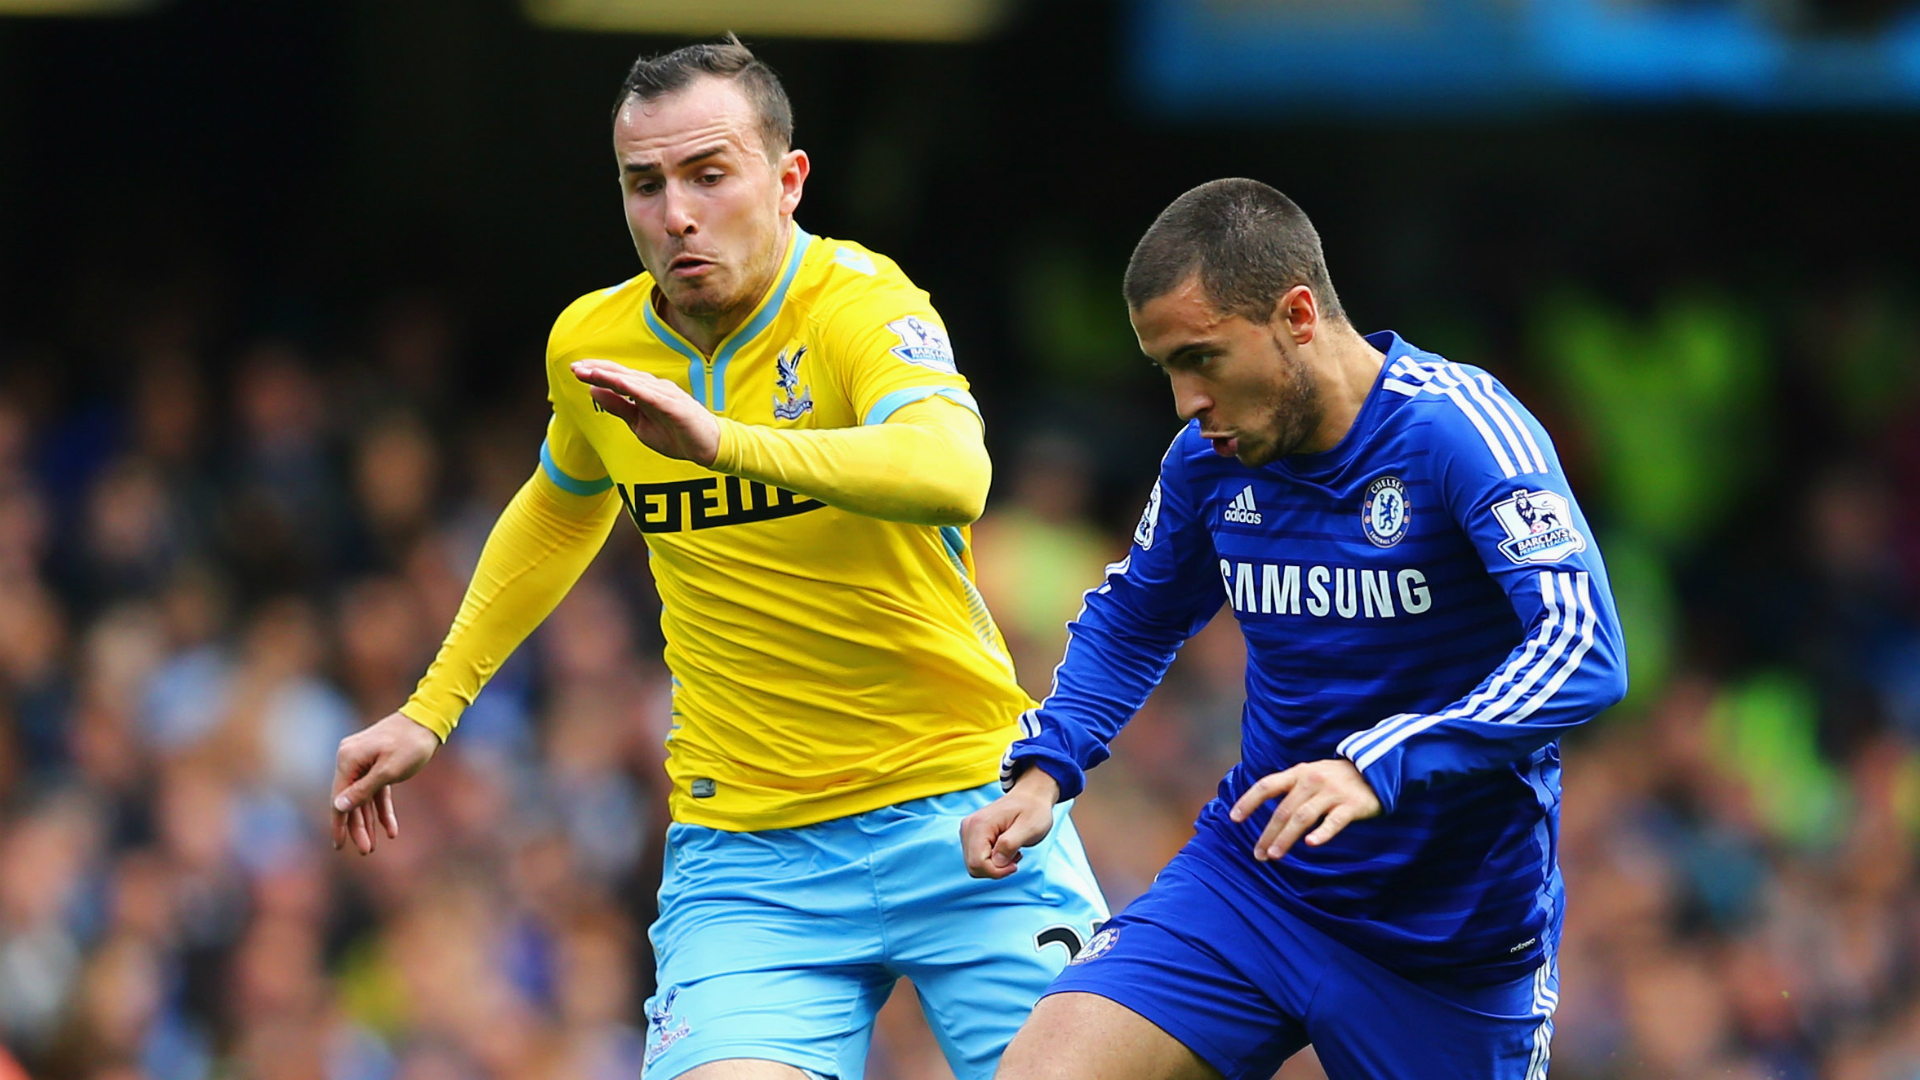 Jordon Mutch Crystal Palace; Eden Hazard Chelsea